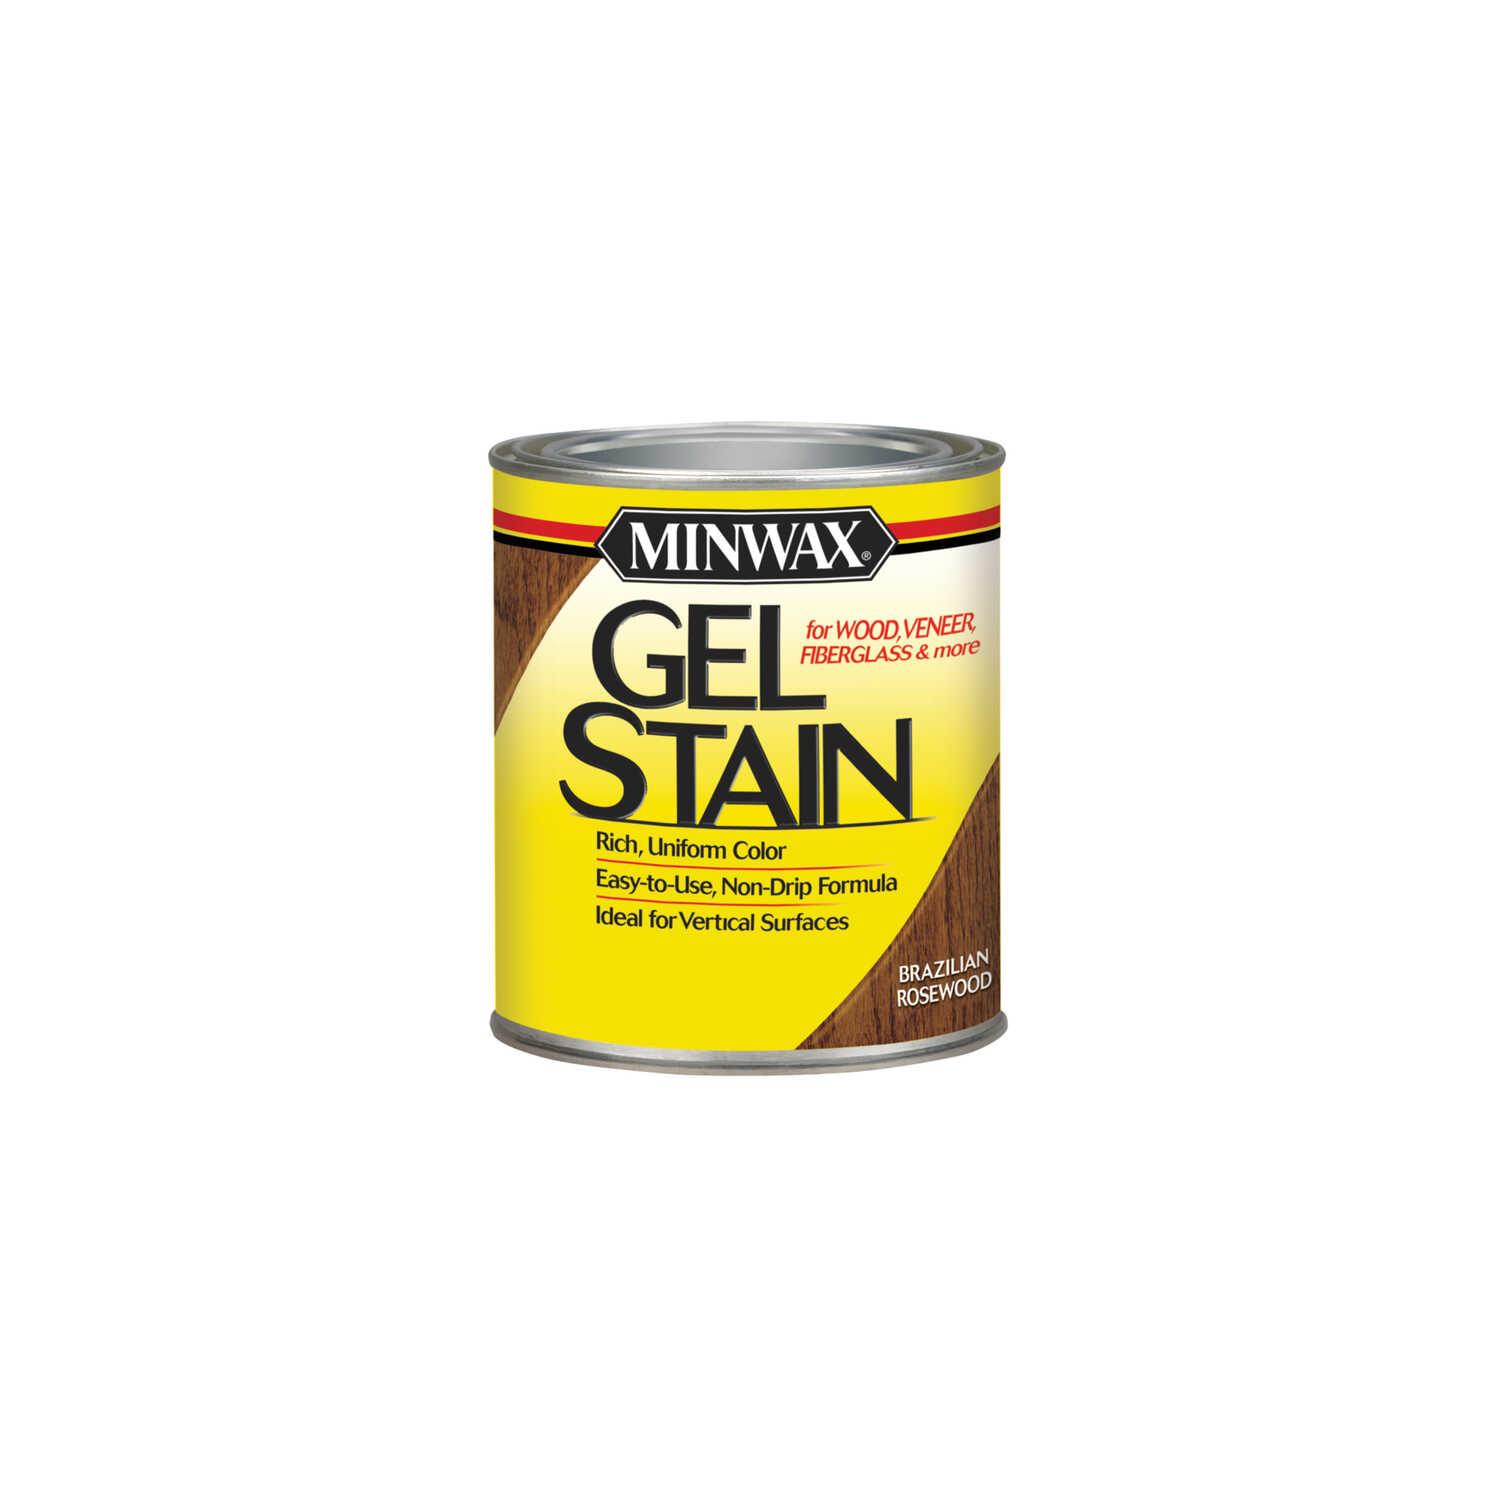 Minwax  Transparent  Low Luster  Brazilian Rosewood  Oil-Based  Gel Stain  0.5 pt.